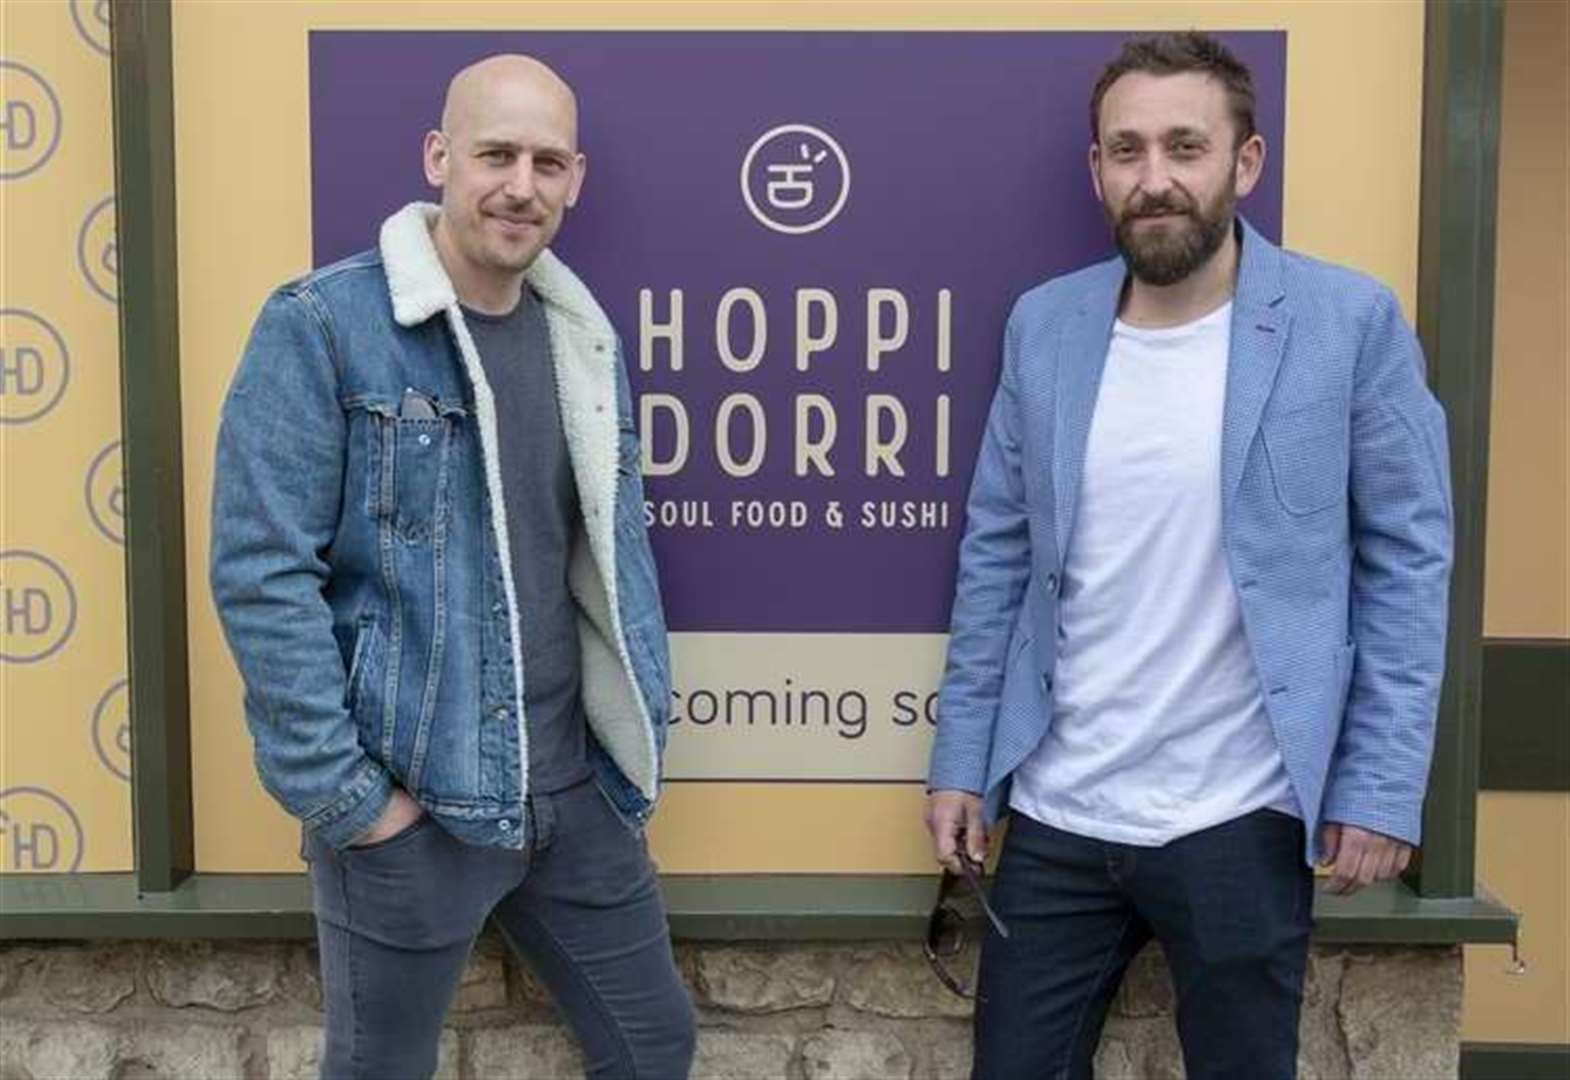 When will chef to stars Sam Letteri be opening his new Hoppi Dorri restaurant in Stamford?